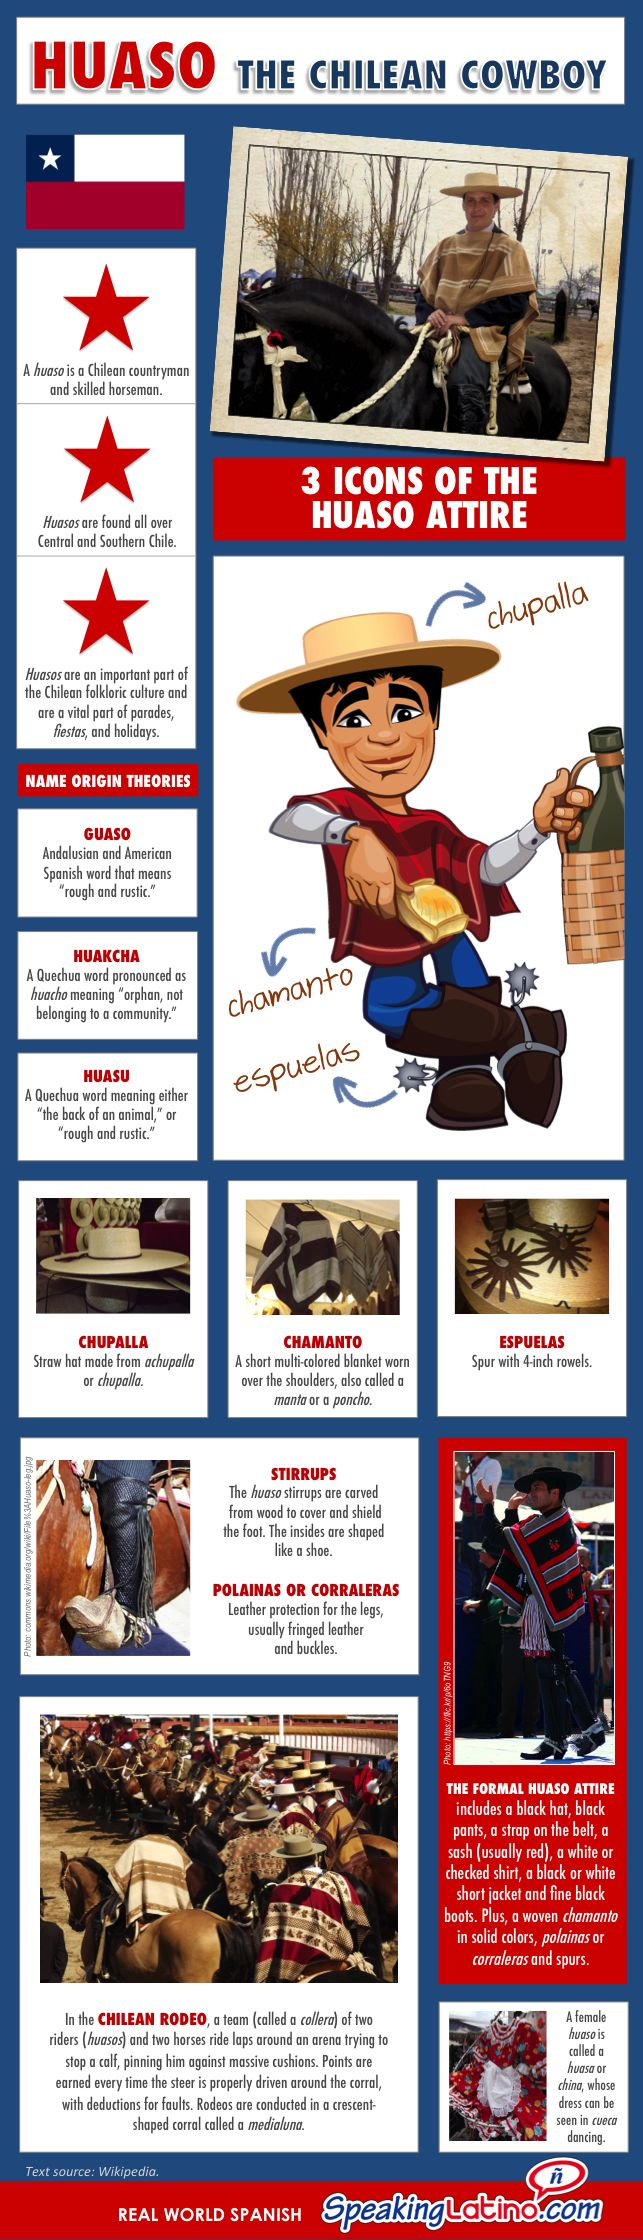 "Huaso: The Chilean Cowboy | An infographic that highlights some of the characteristics of the Chilean Huaso. It includes the name origin and the ""huaso"" attire elements. #Infographic #Chile"